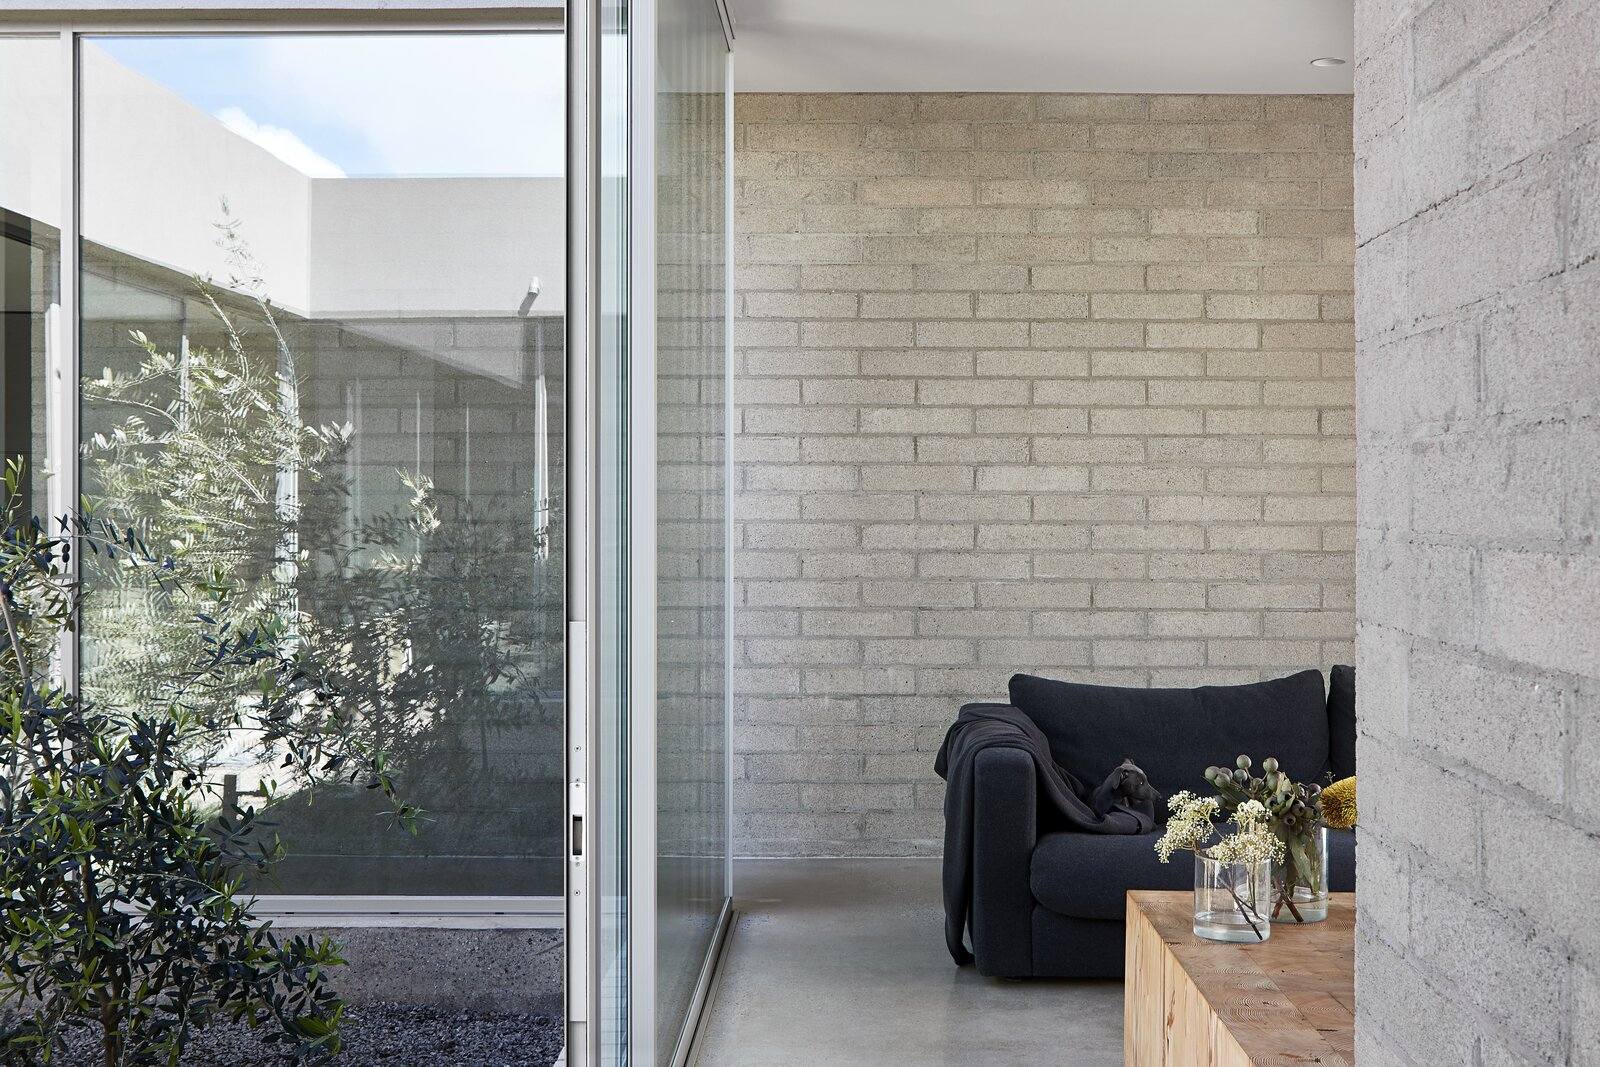 Living Room, Sofa, Recessed Lighting, Ceiling Lighting, Coffee Tables, and Concrete Floor  Photo 15 of 20 in A Concrete House Is Softened by an Airy Internal Courtyard, Complete With an Olive Grove